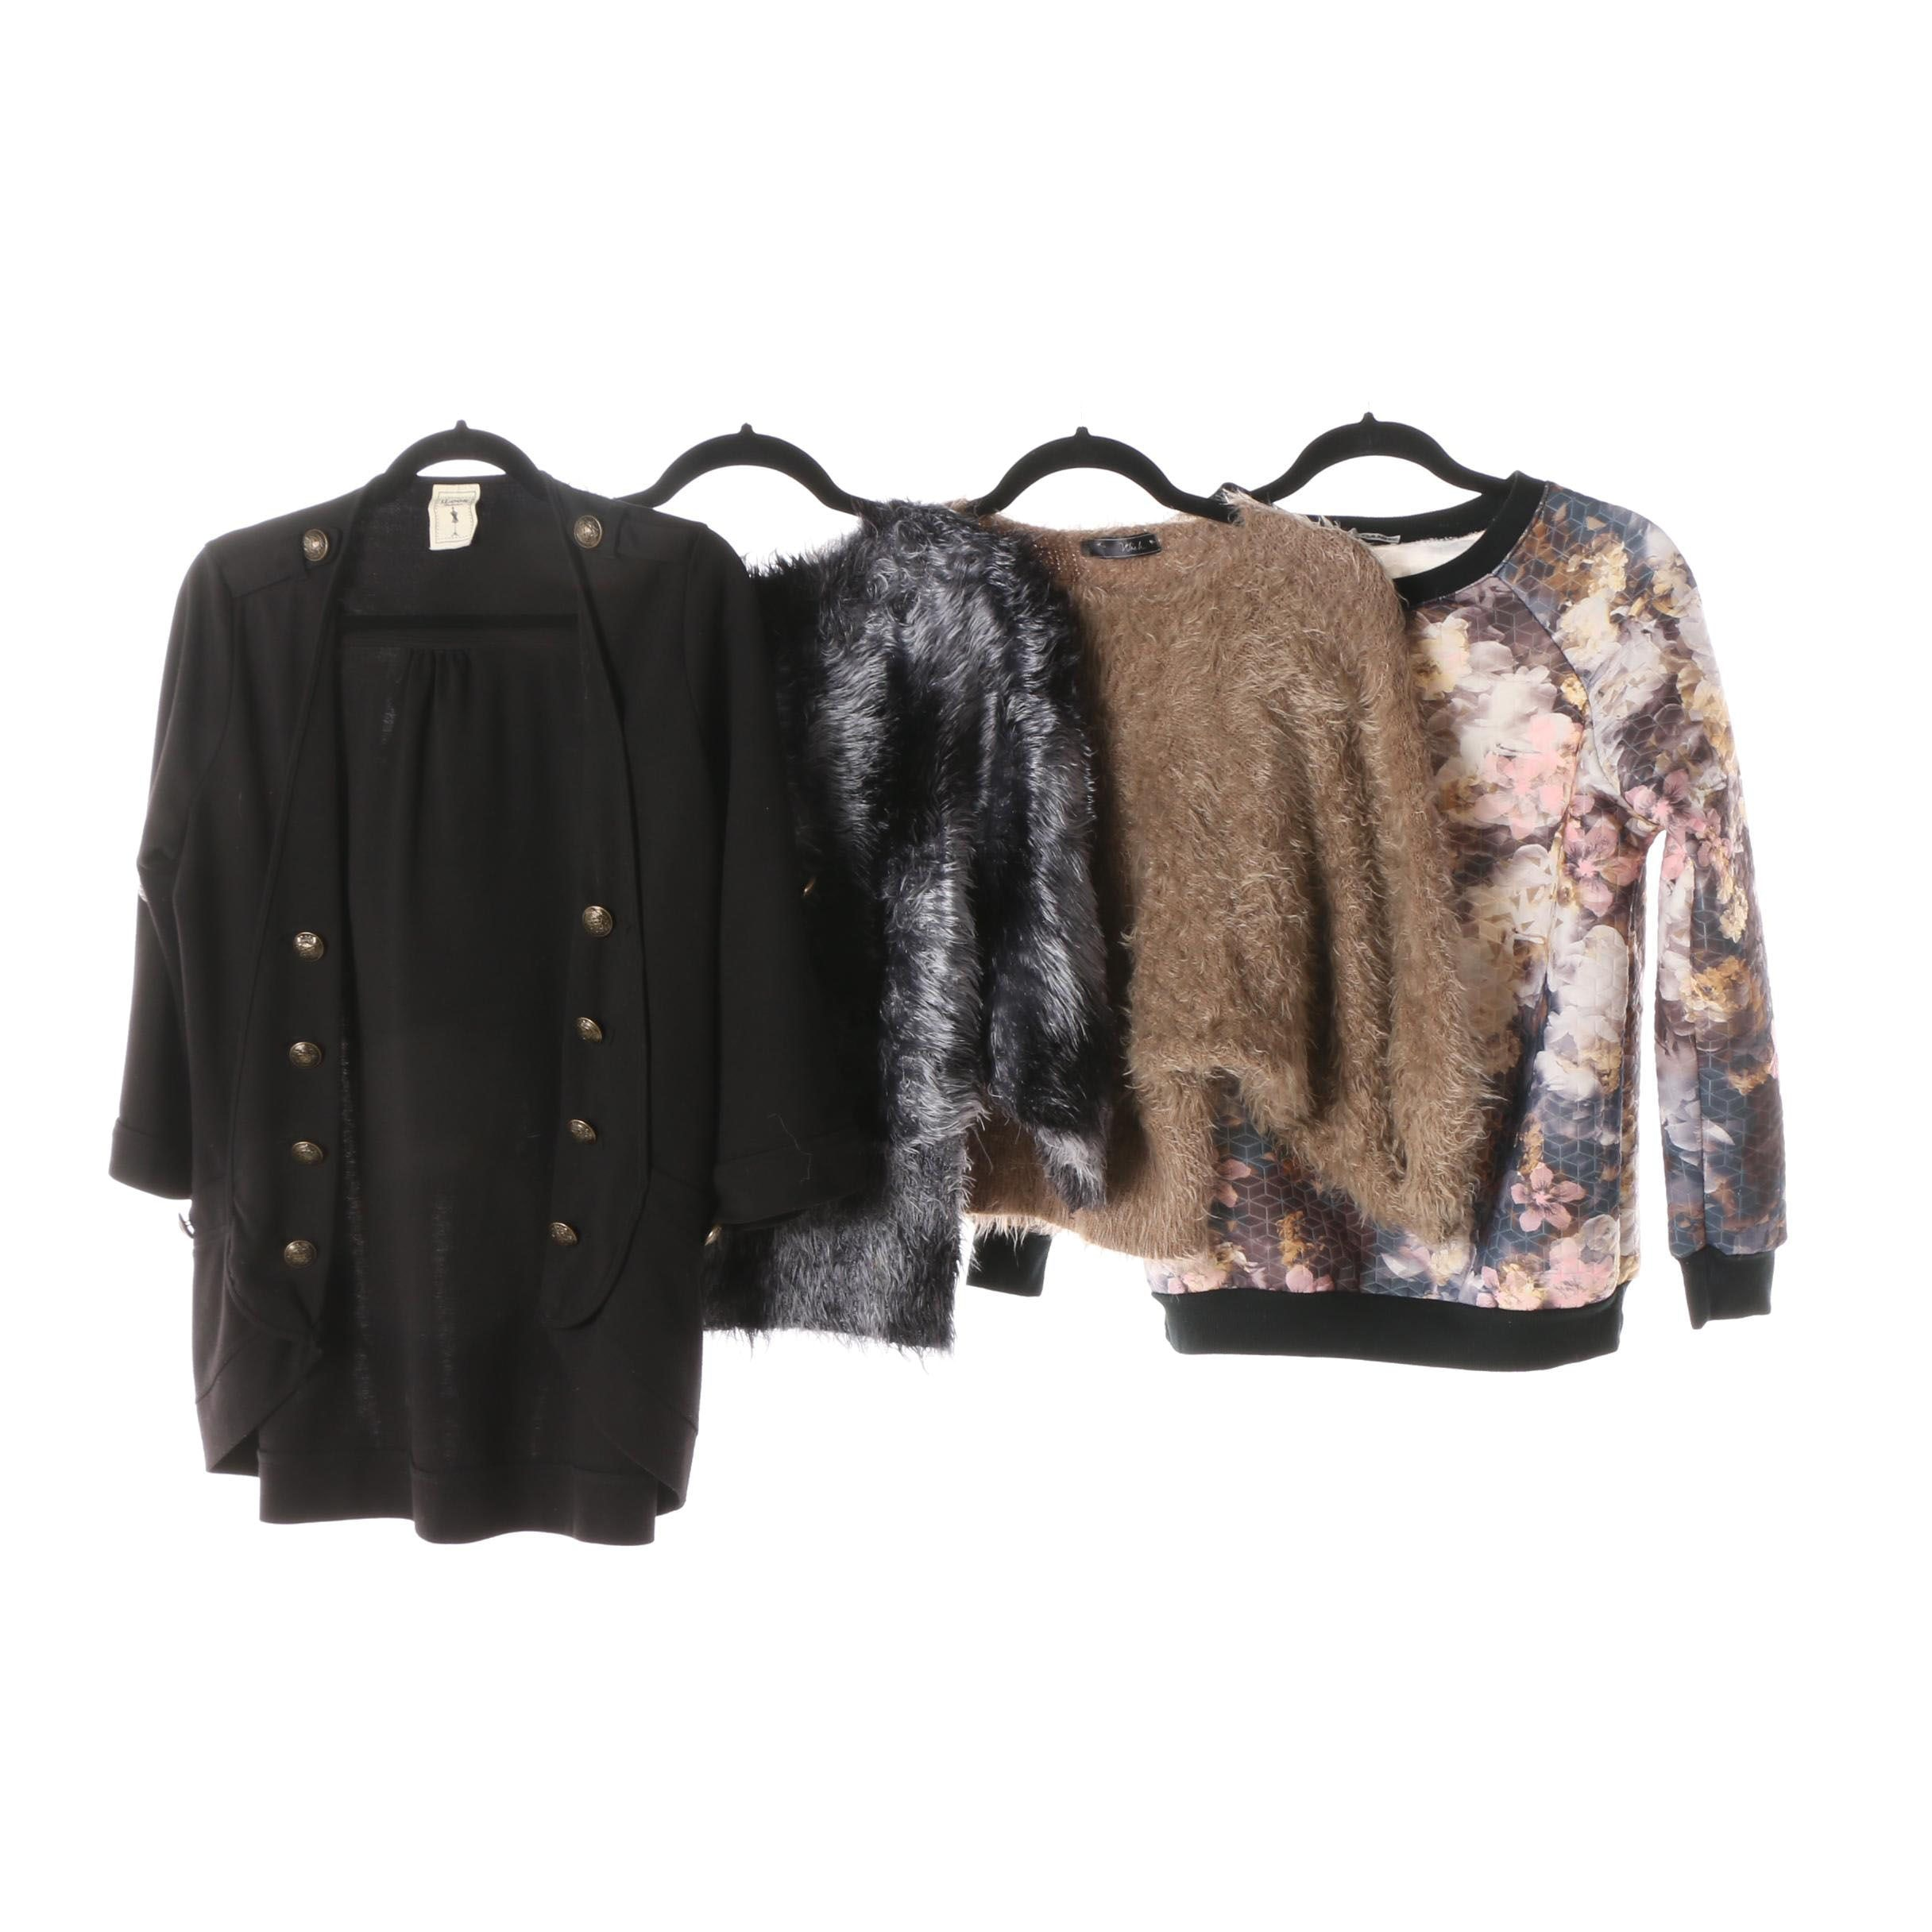 Women's Fuzzy Sweaters, Floral Sweatshirts and Black Cardigan